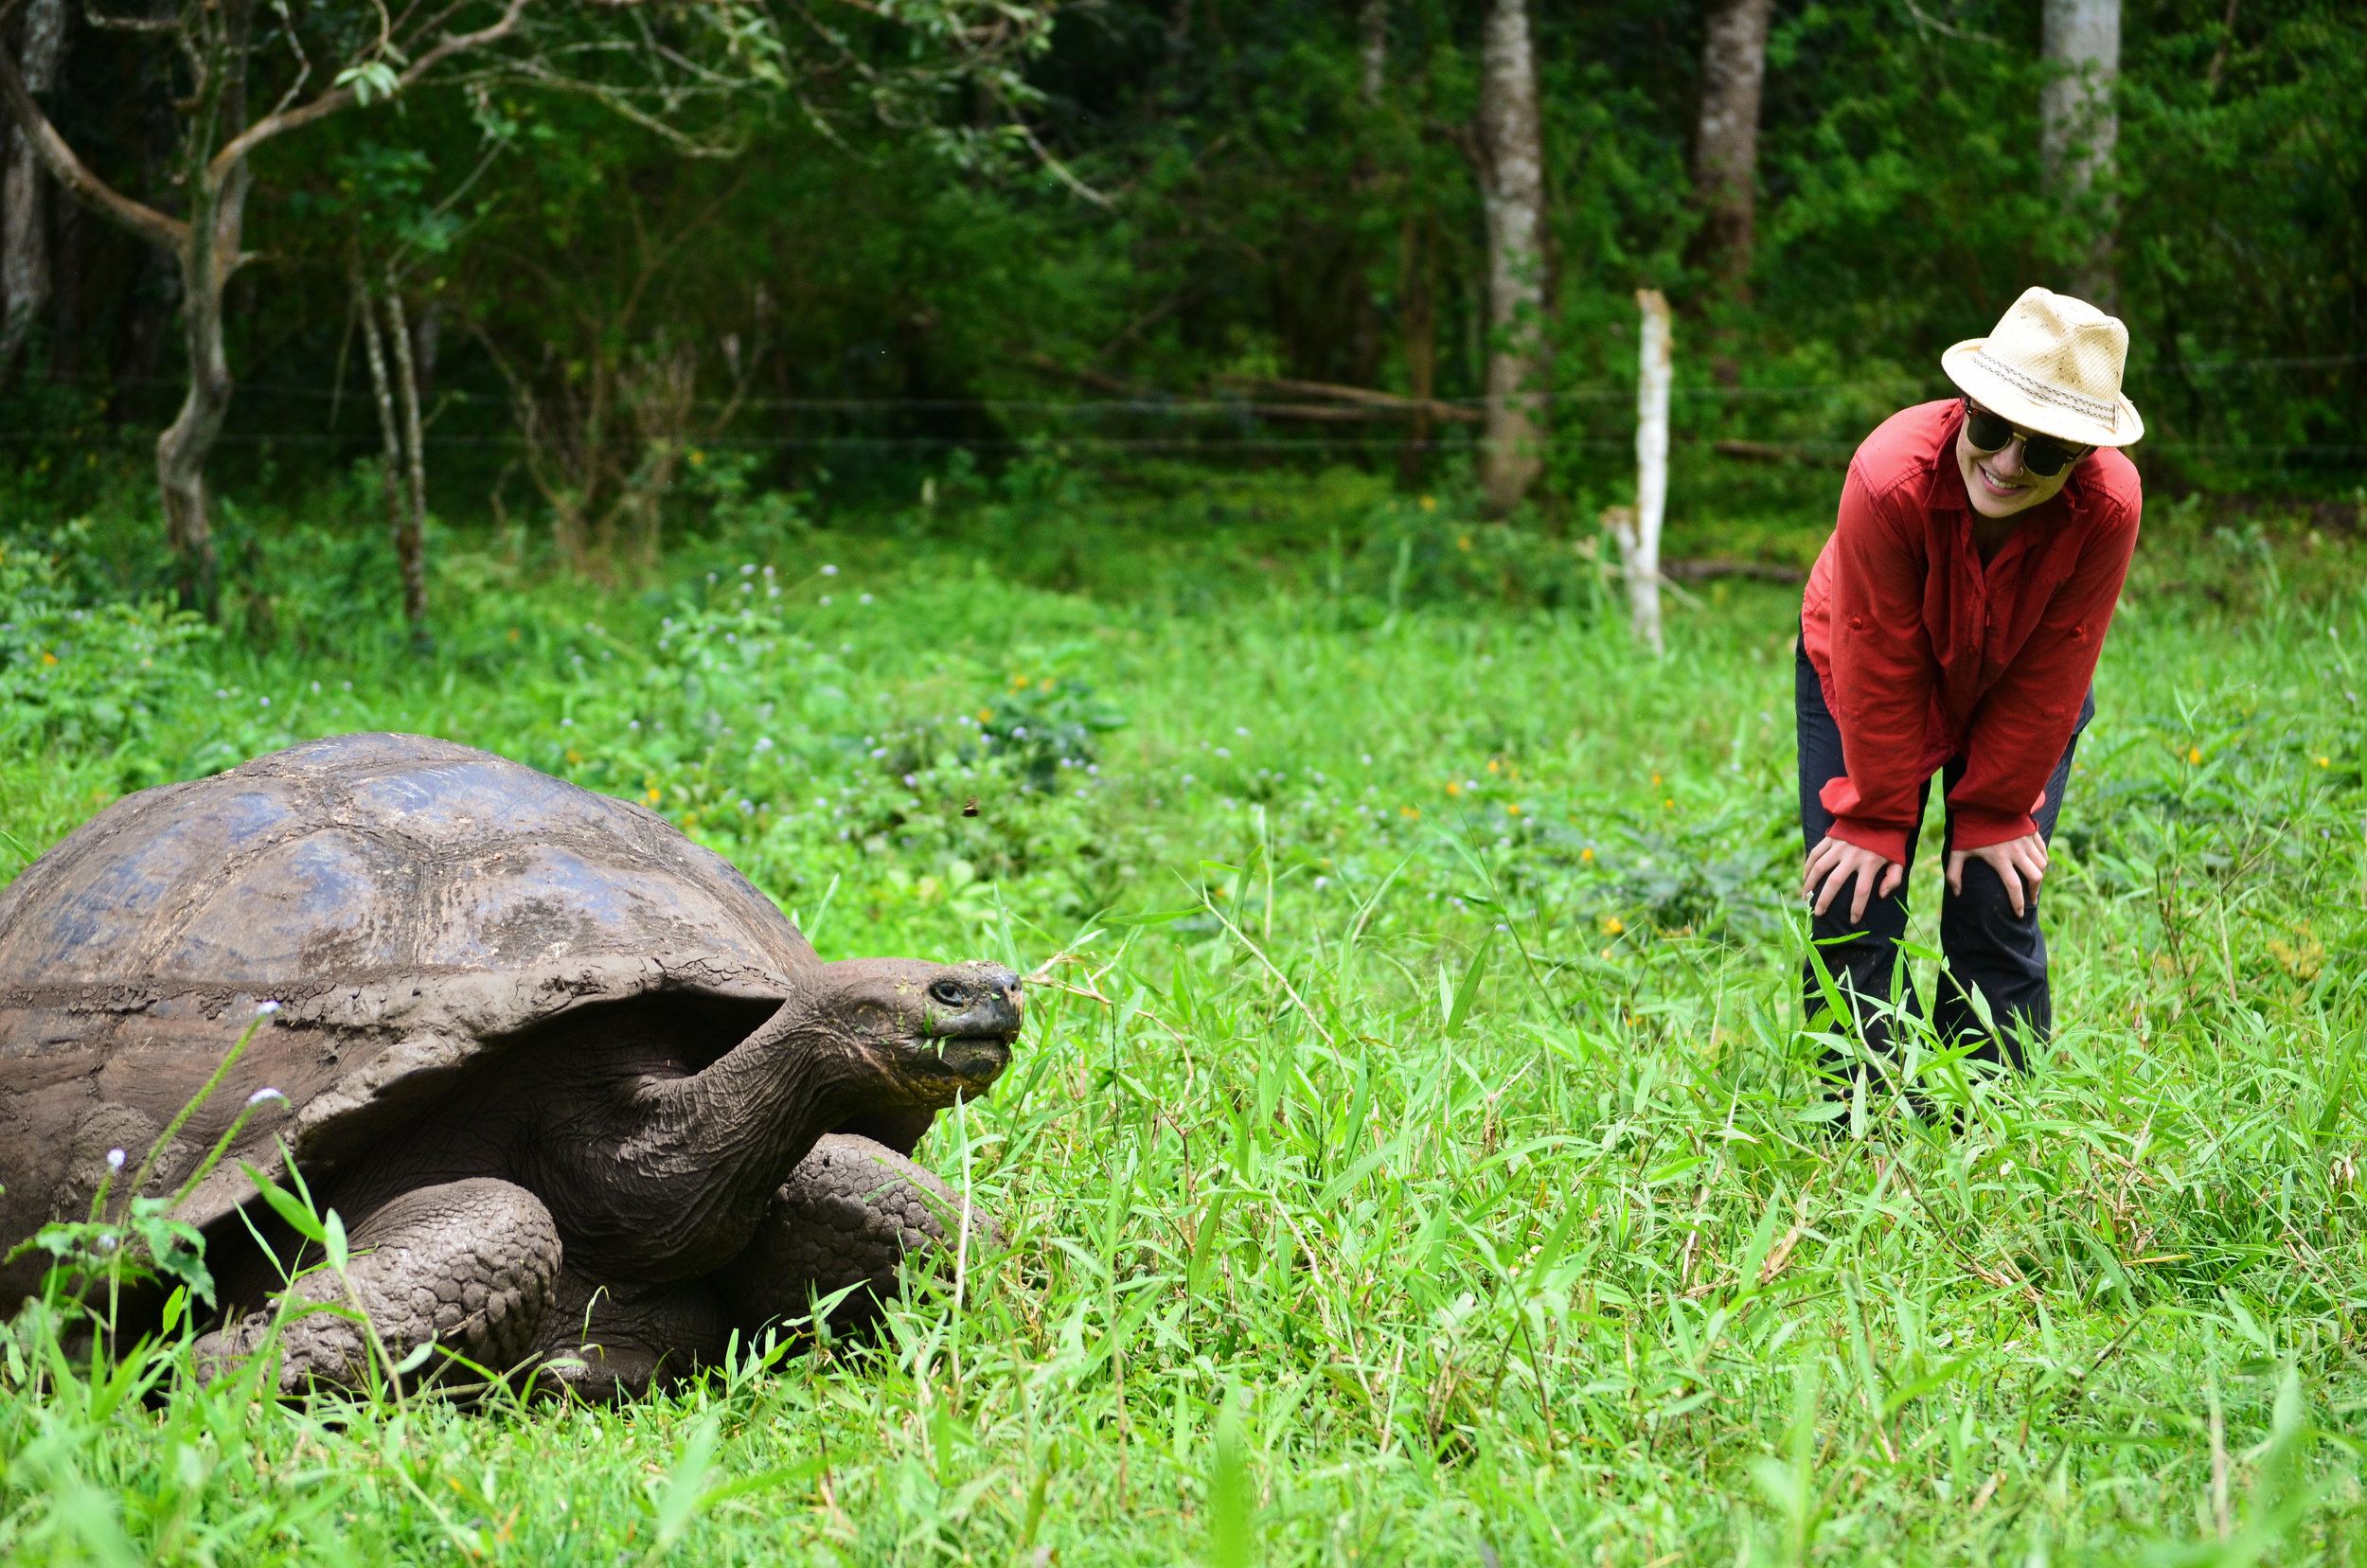 Rebecca has a moment with a giant tortoise at the preserve on Santa Cruz Island